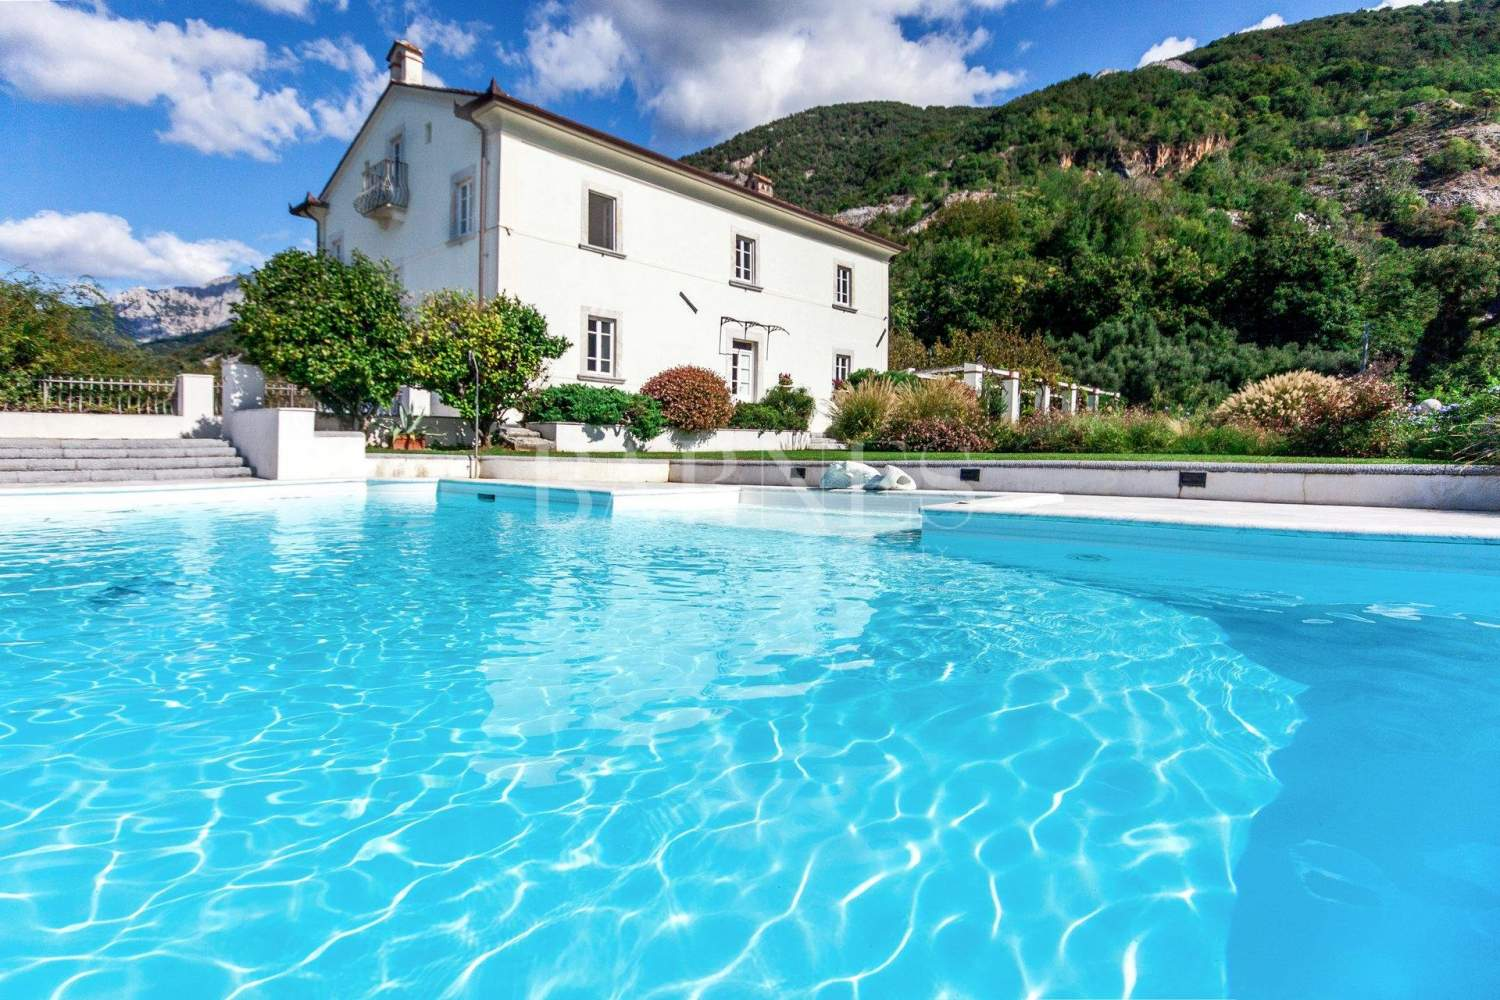 Villa with panoramic views on the sea and mountains, swimming pool picture 2